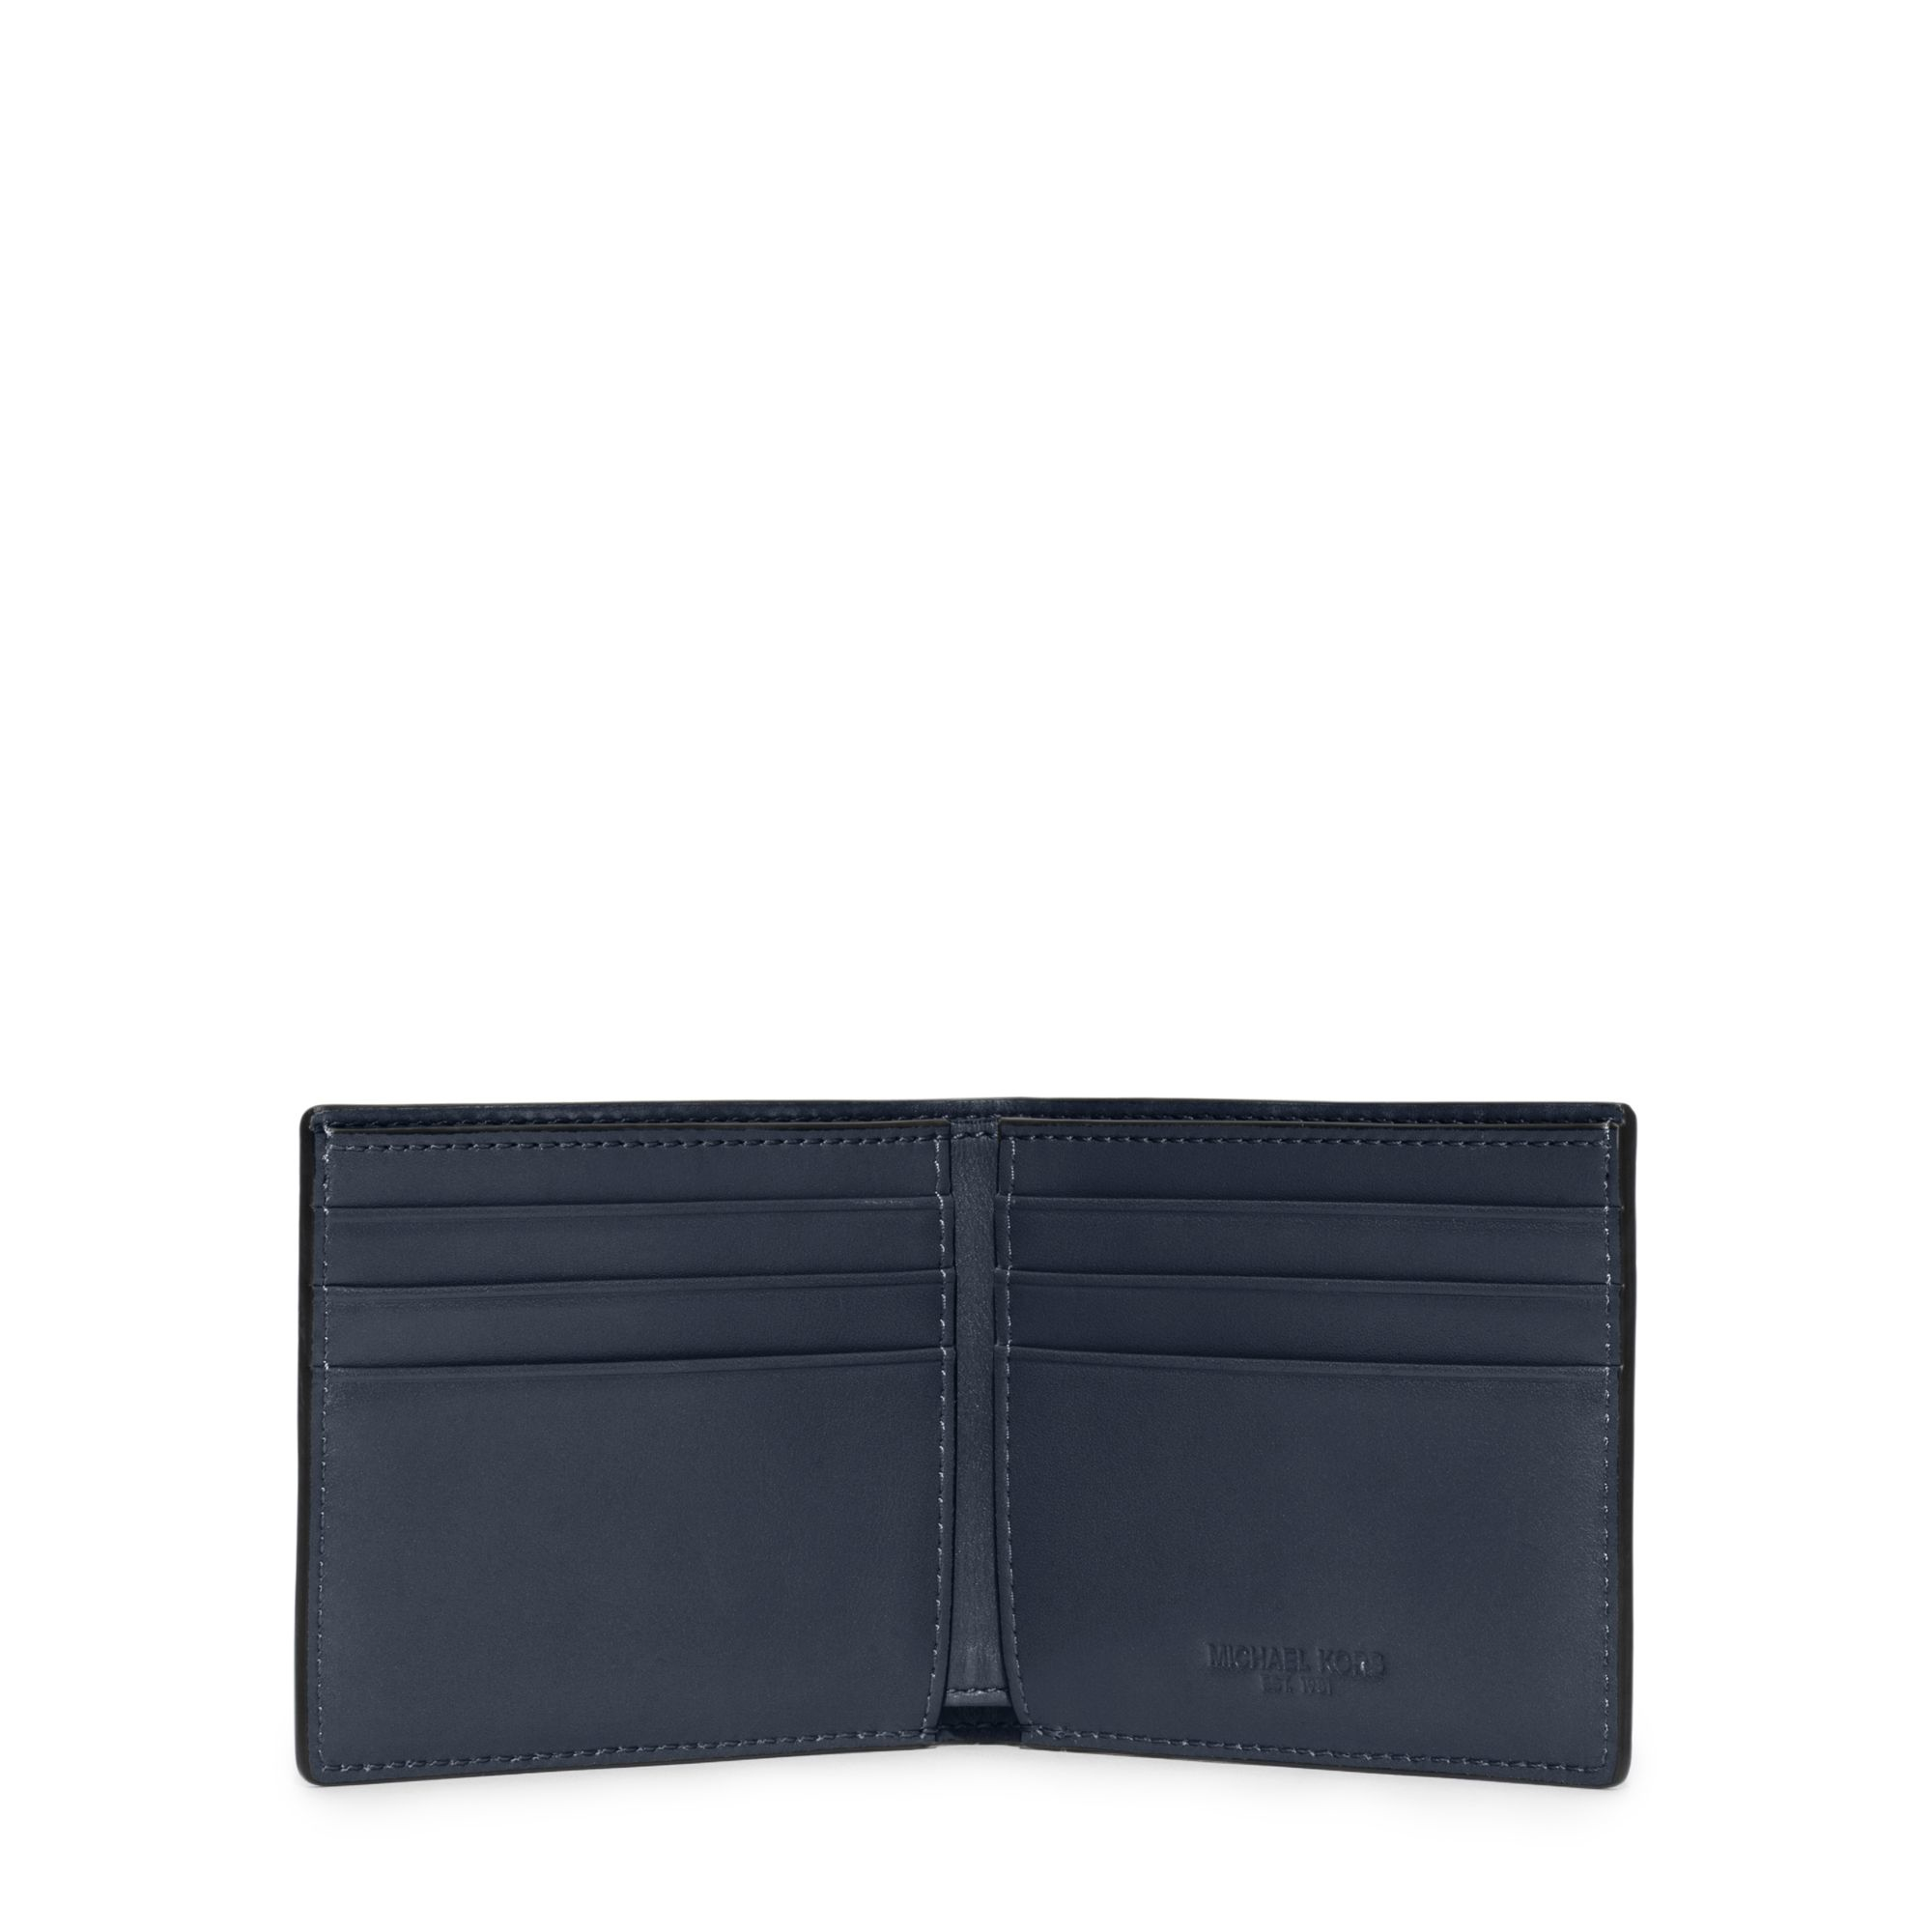 37428714dd57 Michael Kors Mens Harrison Slim Leather Billfold Wallet | Stanford ...